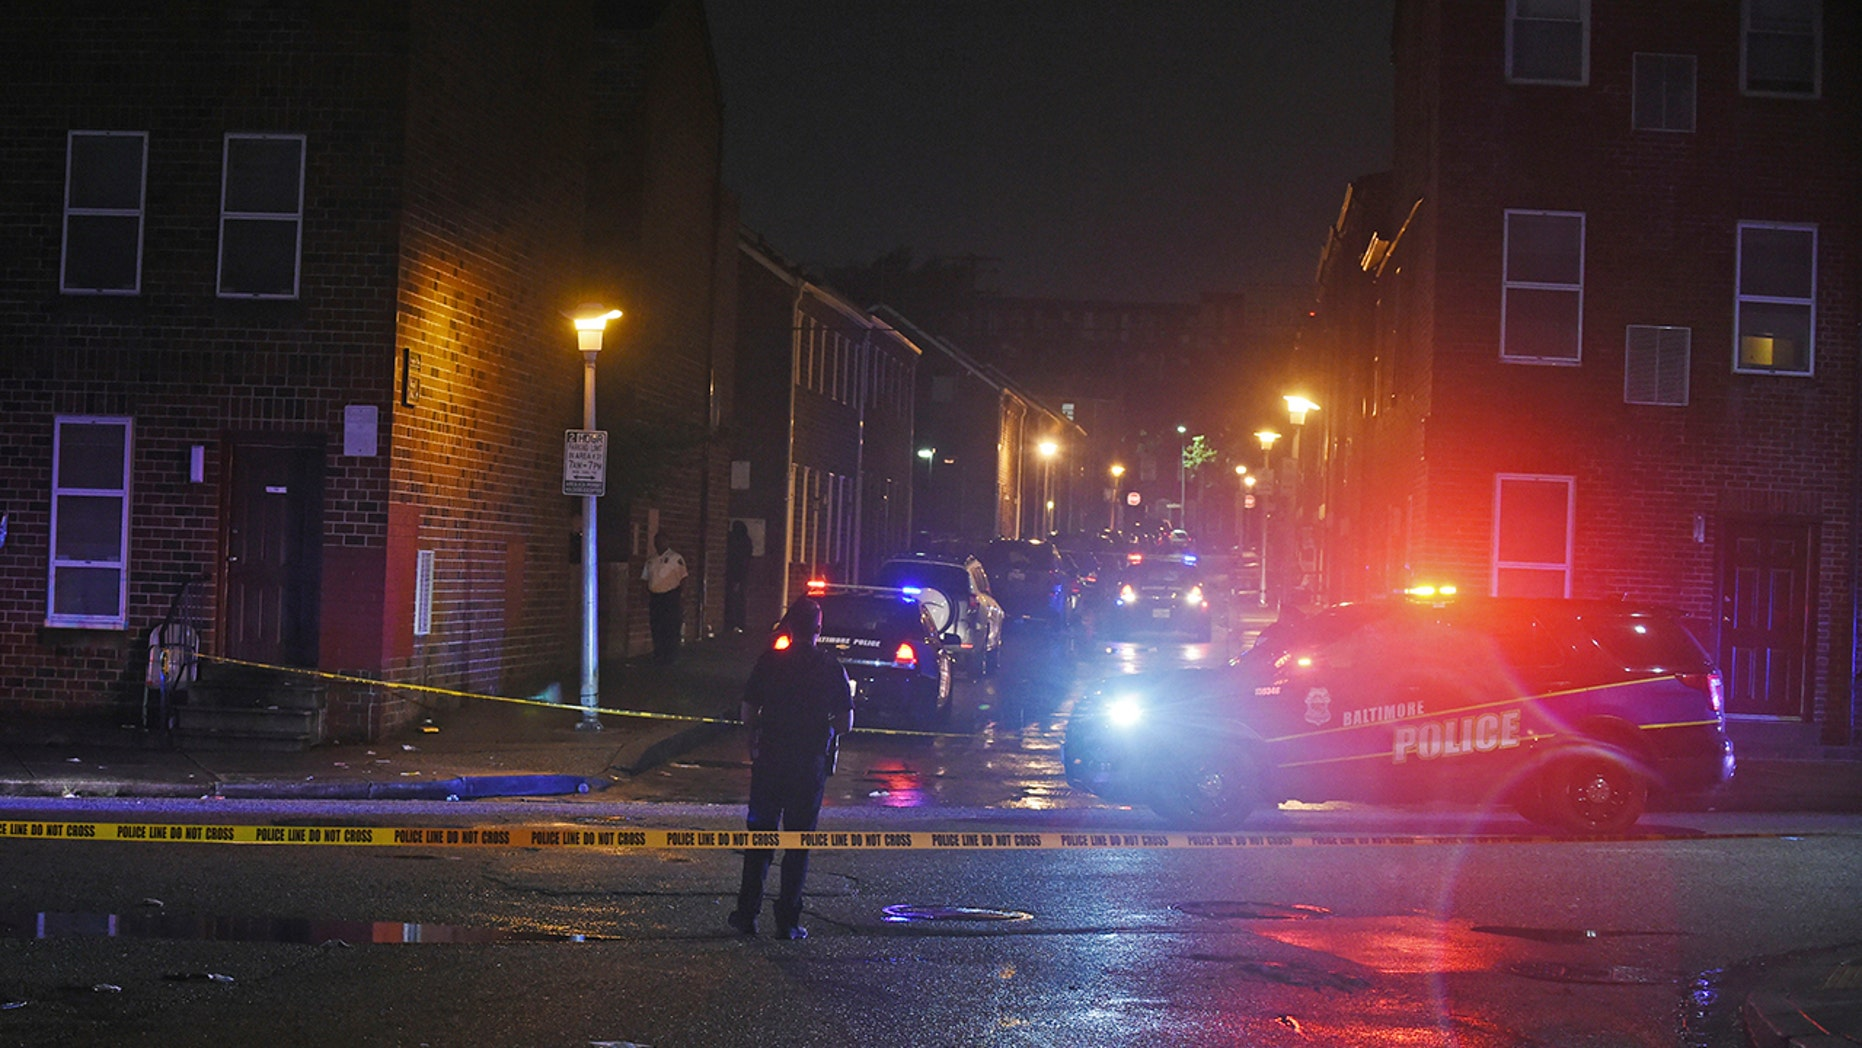 Baltimore City police officers block off the scene of a shooting in Baltimore on Sept. 23. The shootout between a man in a violence-prone Baltimore district and a police officer taking part in a crime suppression initiative left the officer wounded and the suspect dead.